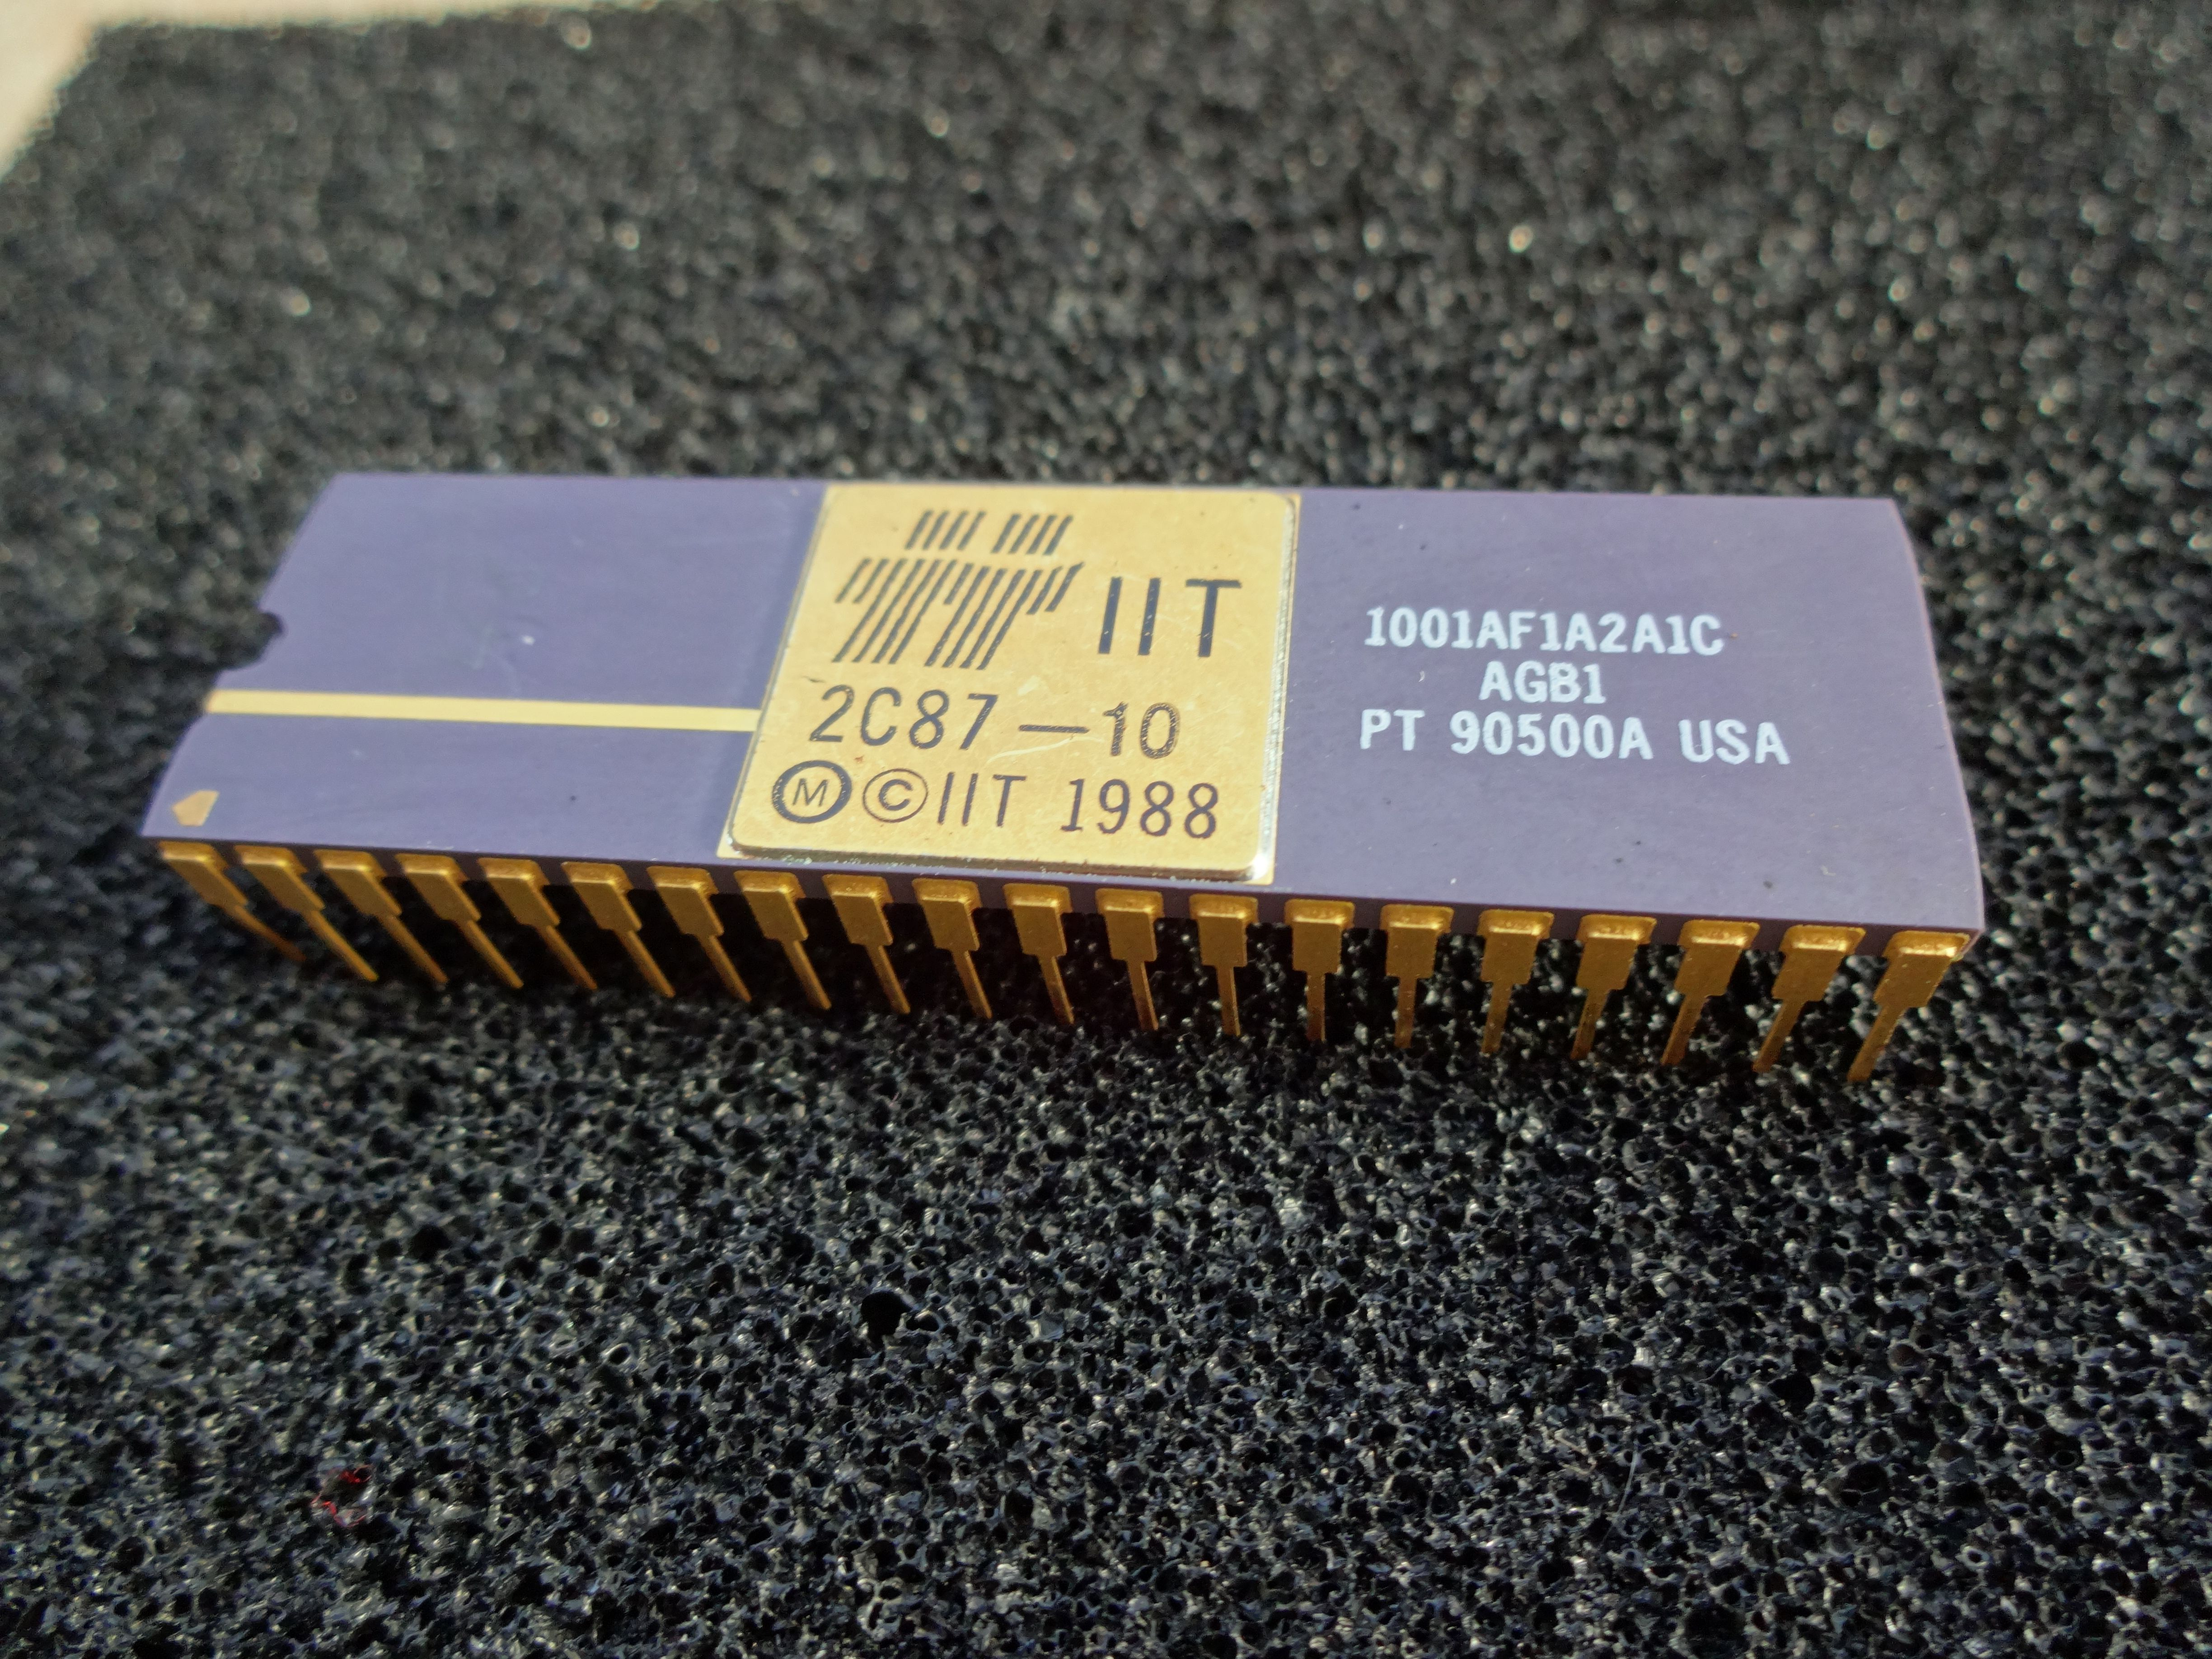 IIT 287, a Maths Co-Processor for Intel 286 CPUs (16 bit